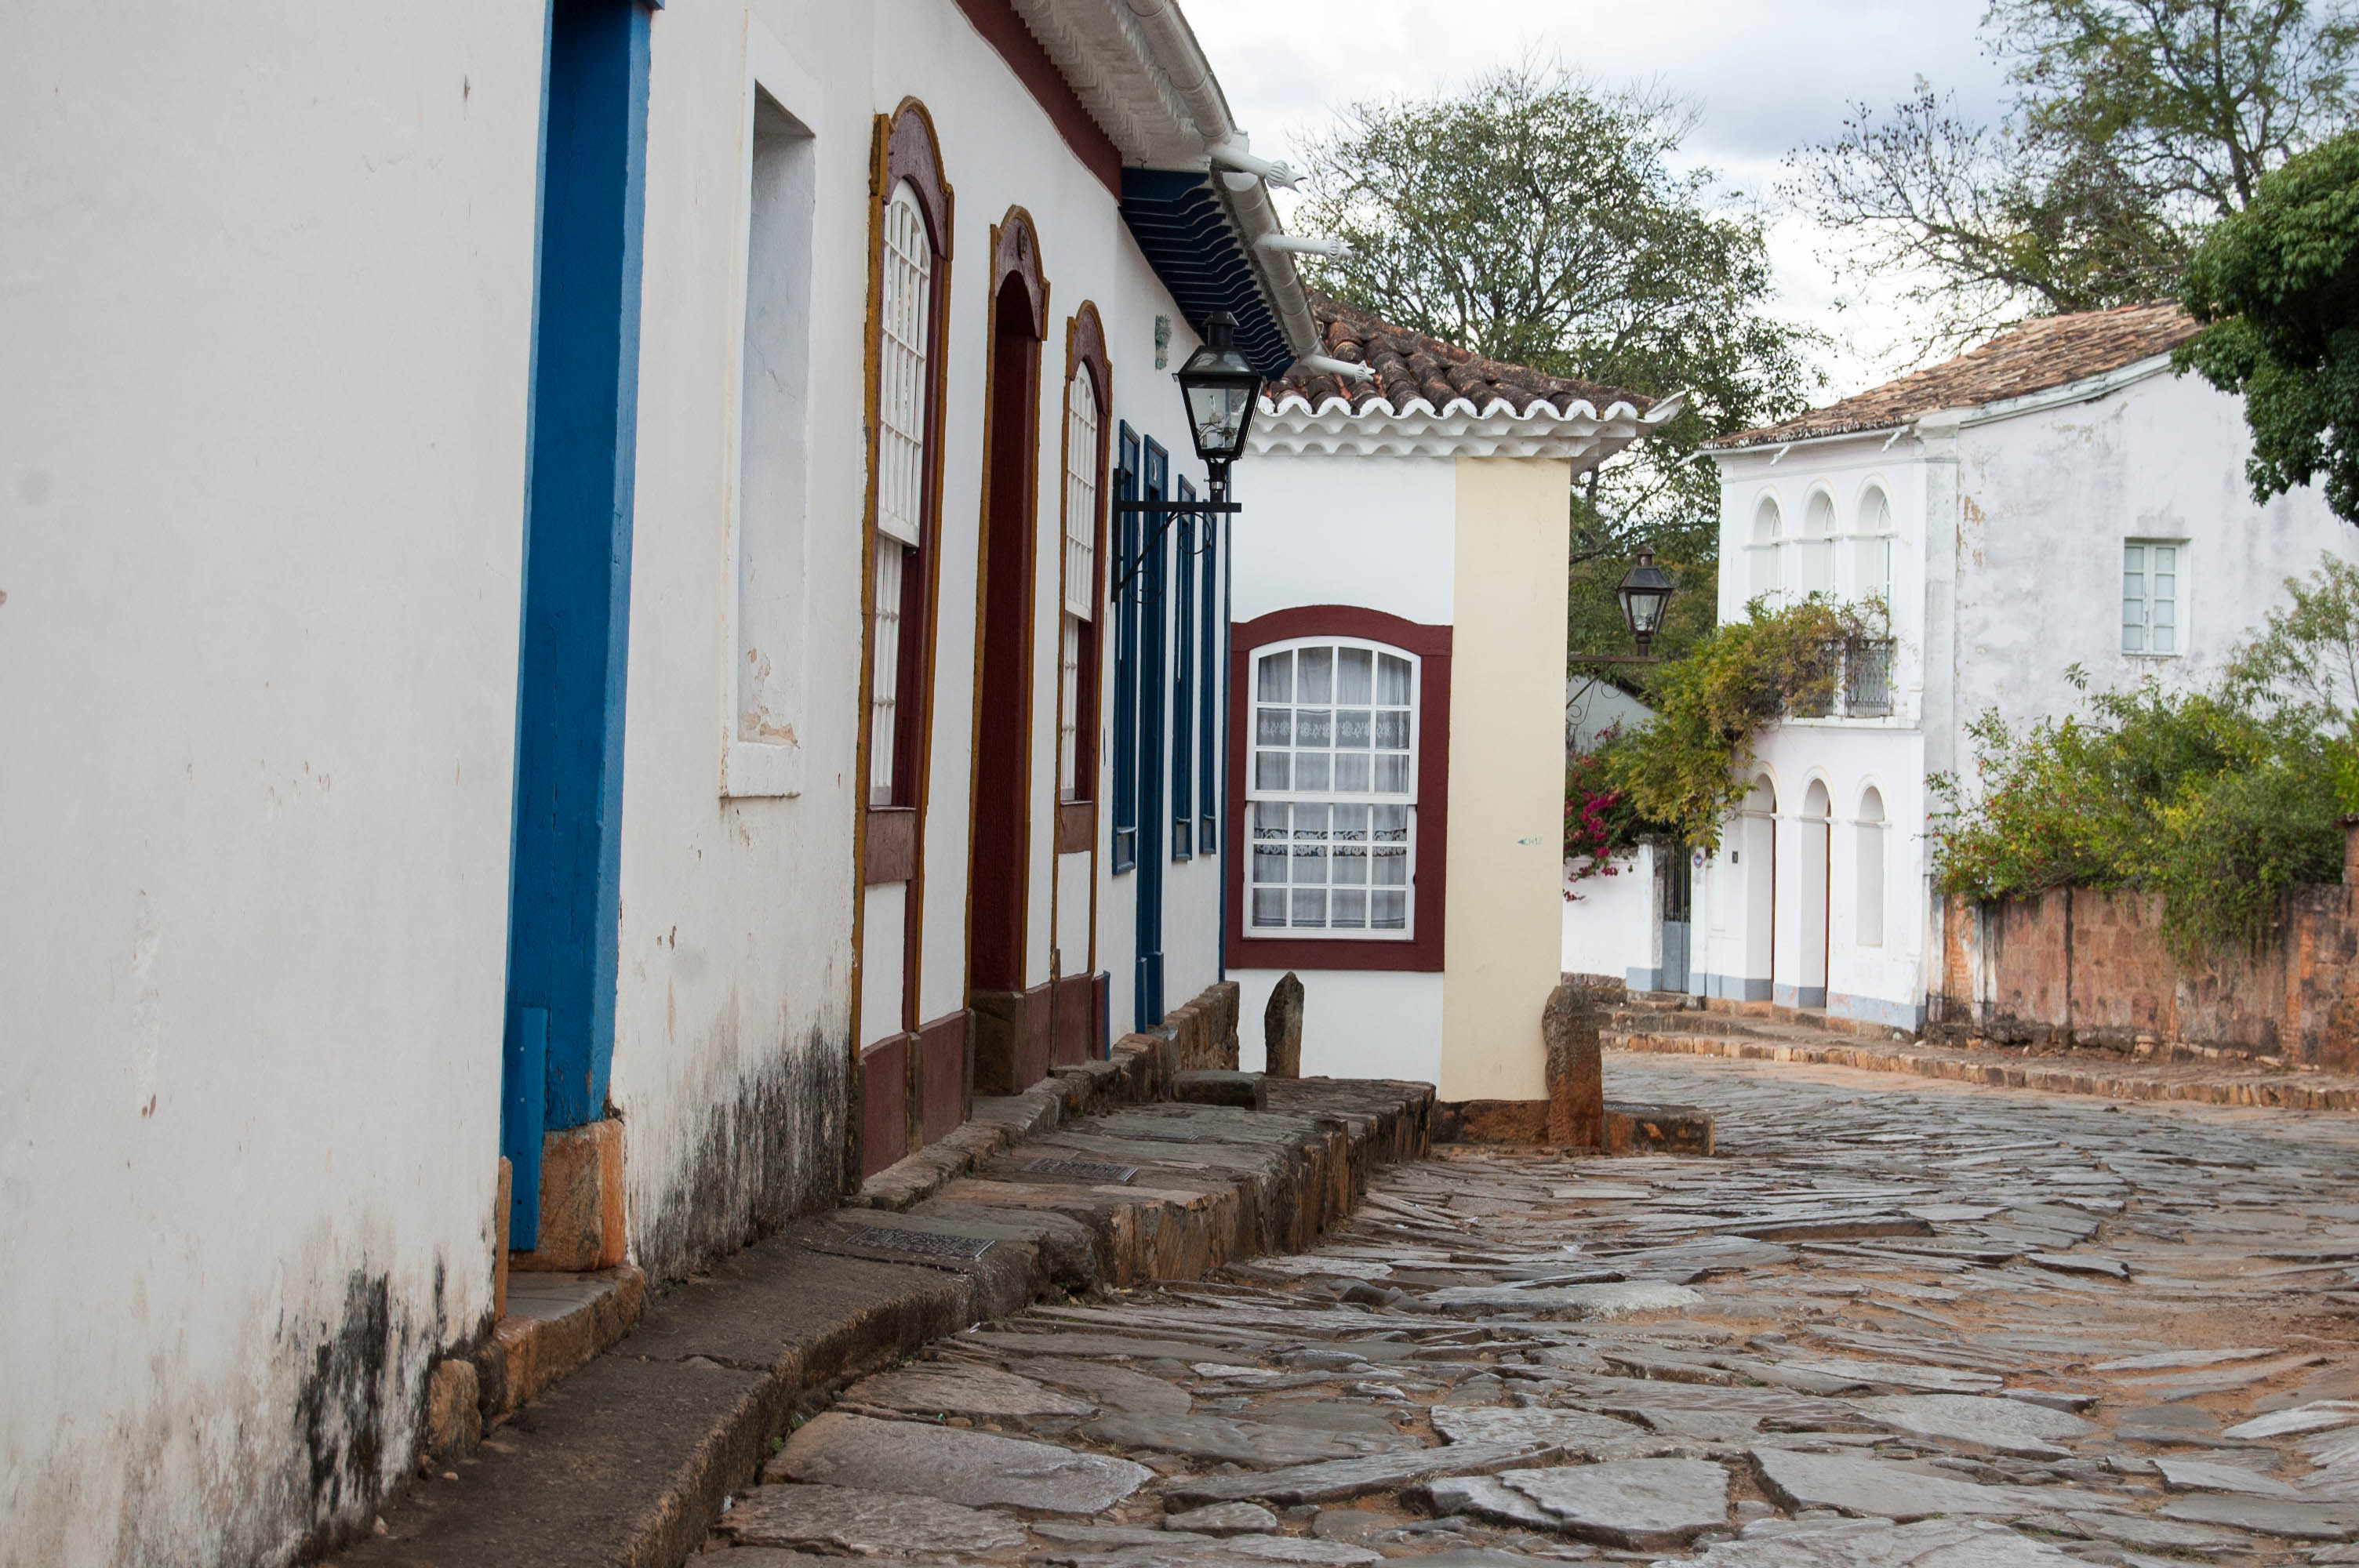 Shot looking down a street in Tiradentes.